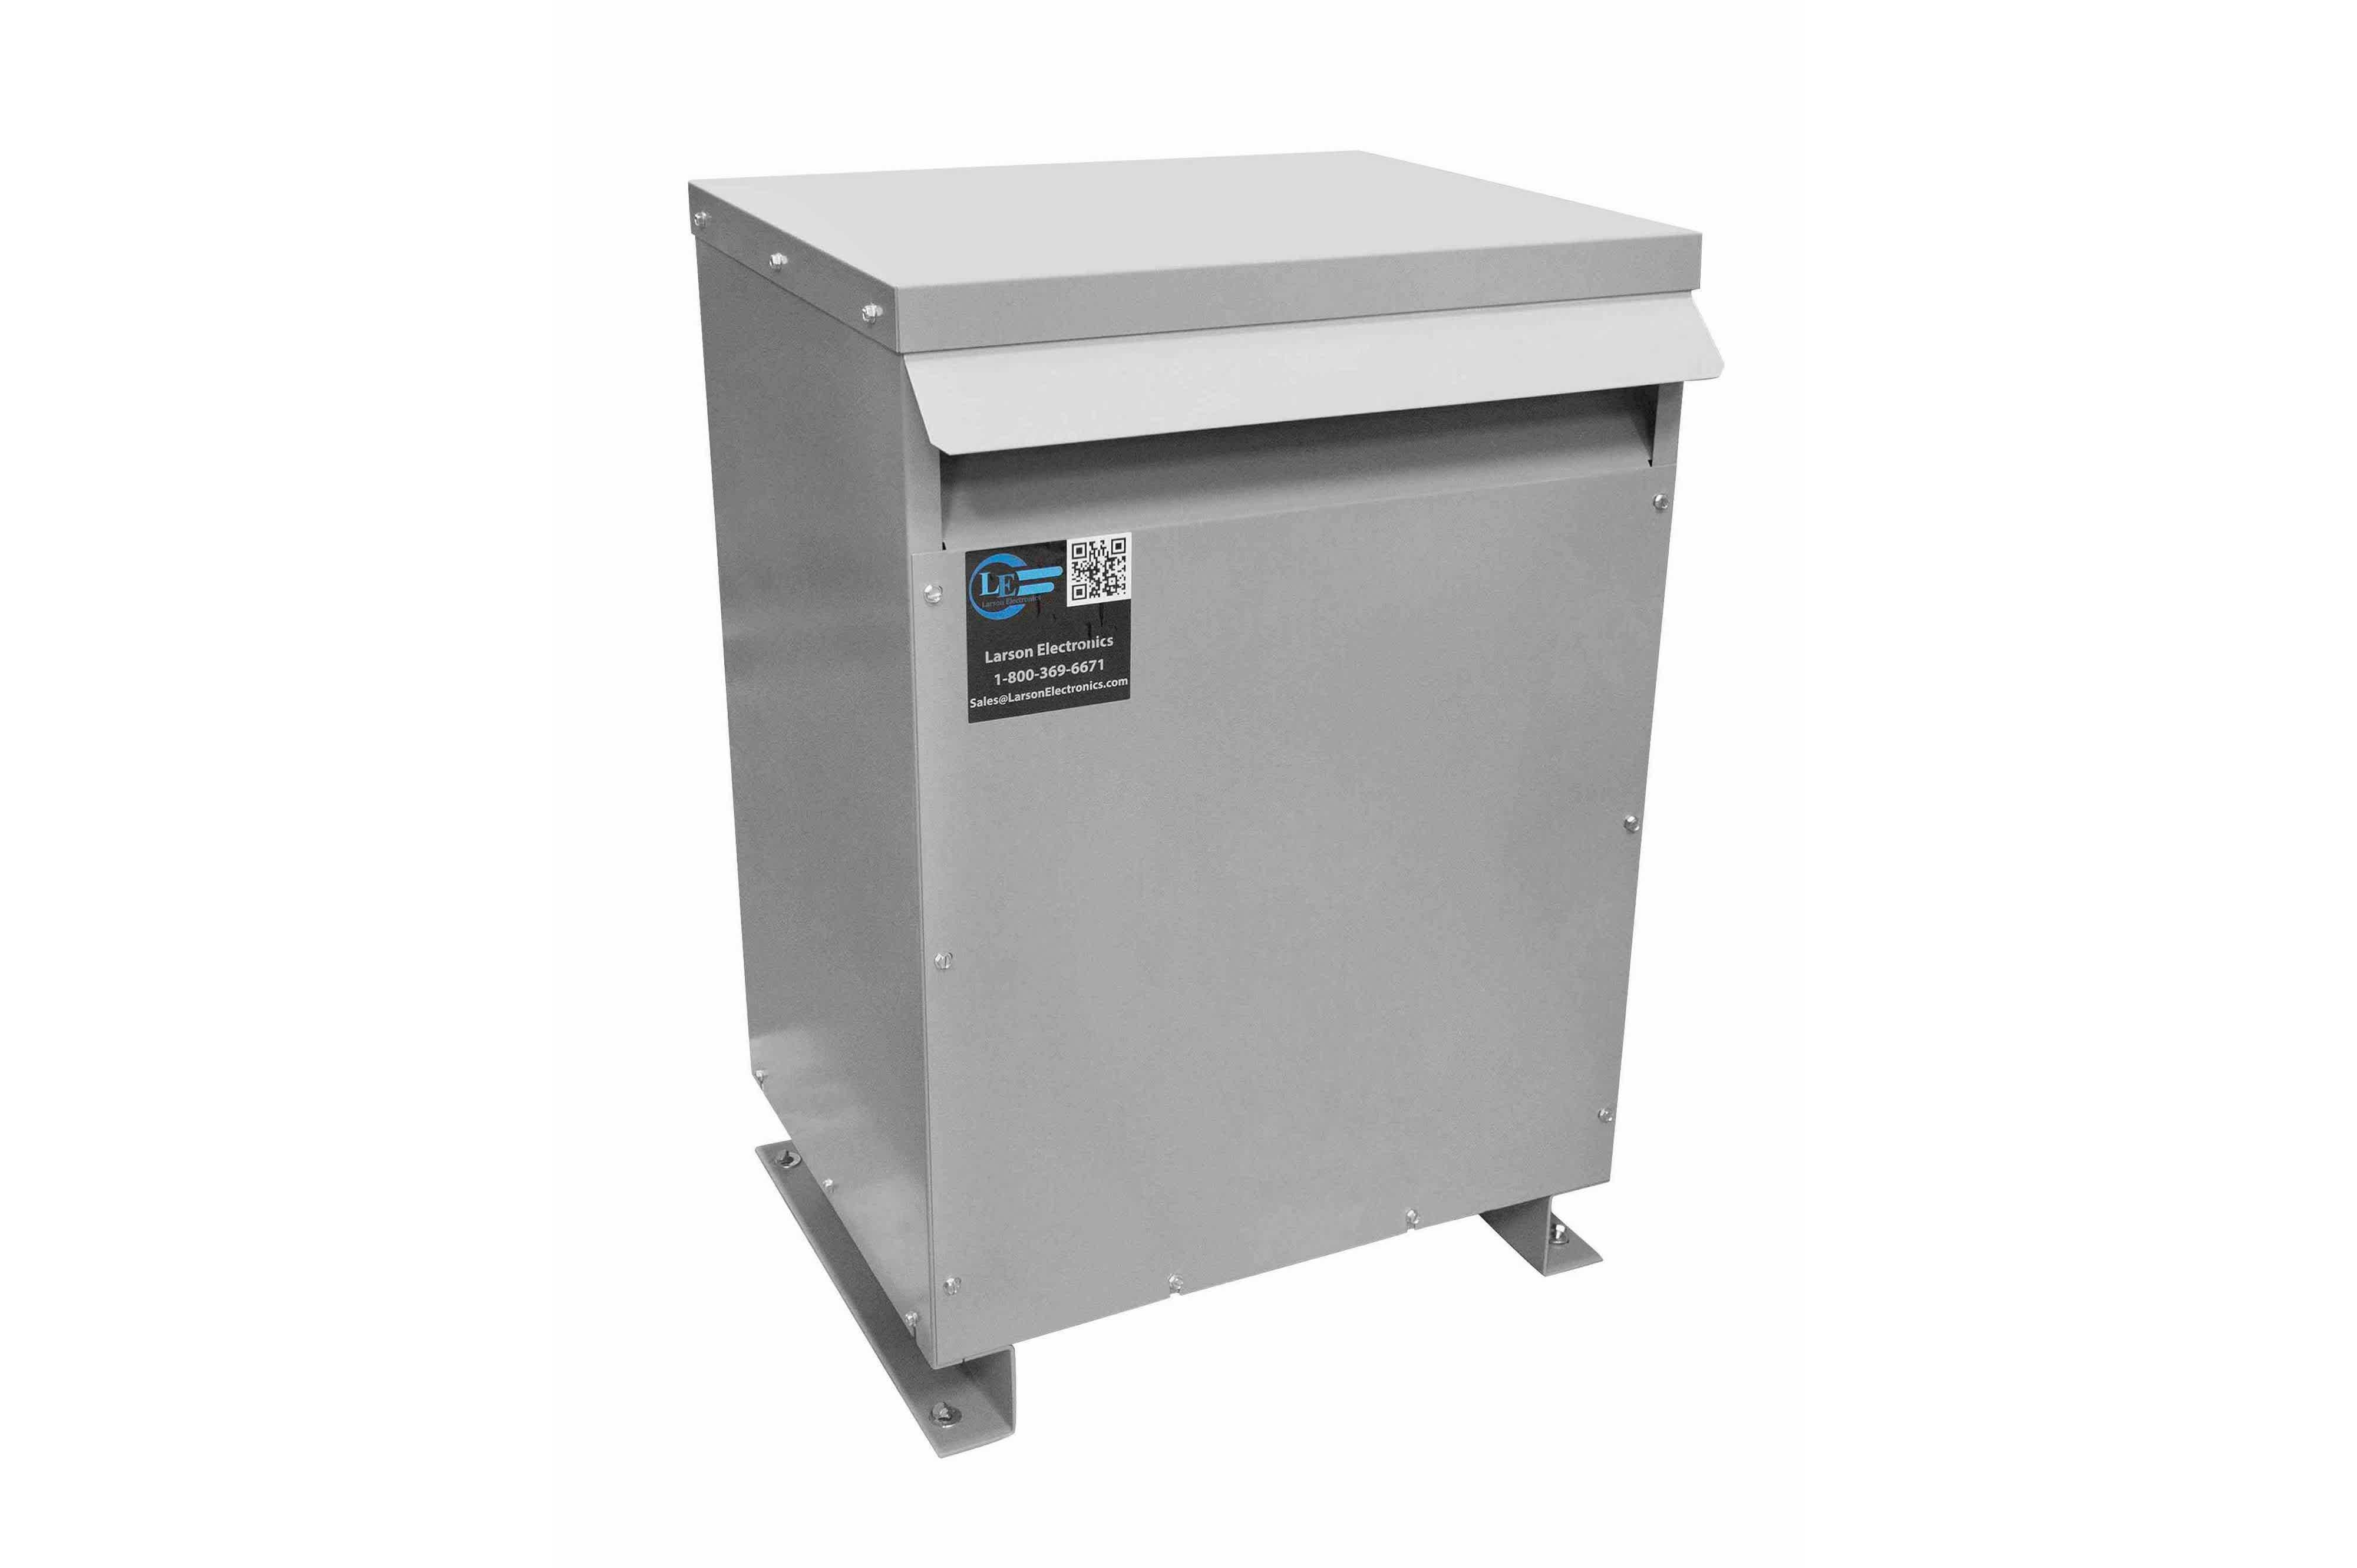 28 kVA 3PH DOE Transformer, 400V Delta Primary, 480Y/277 Wye-N Secondary, N3R, Ventilated, 60 Hz